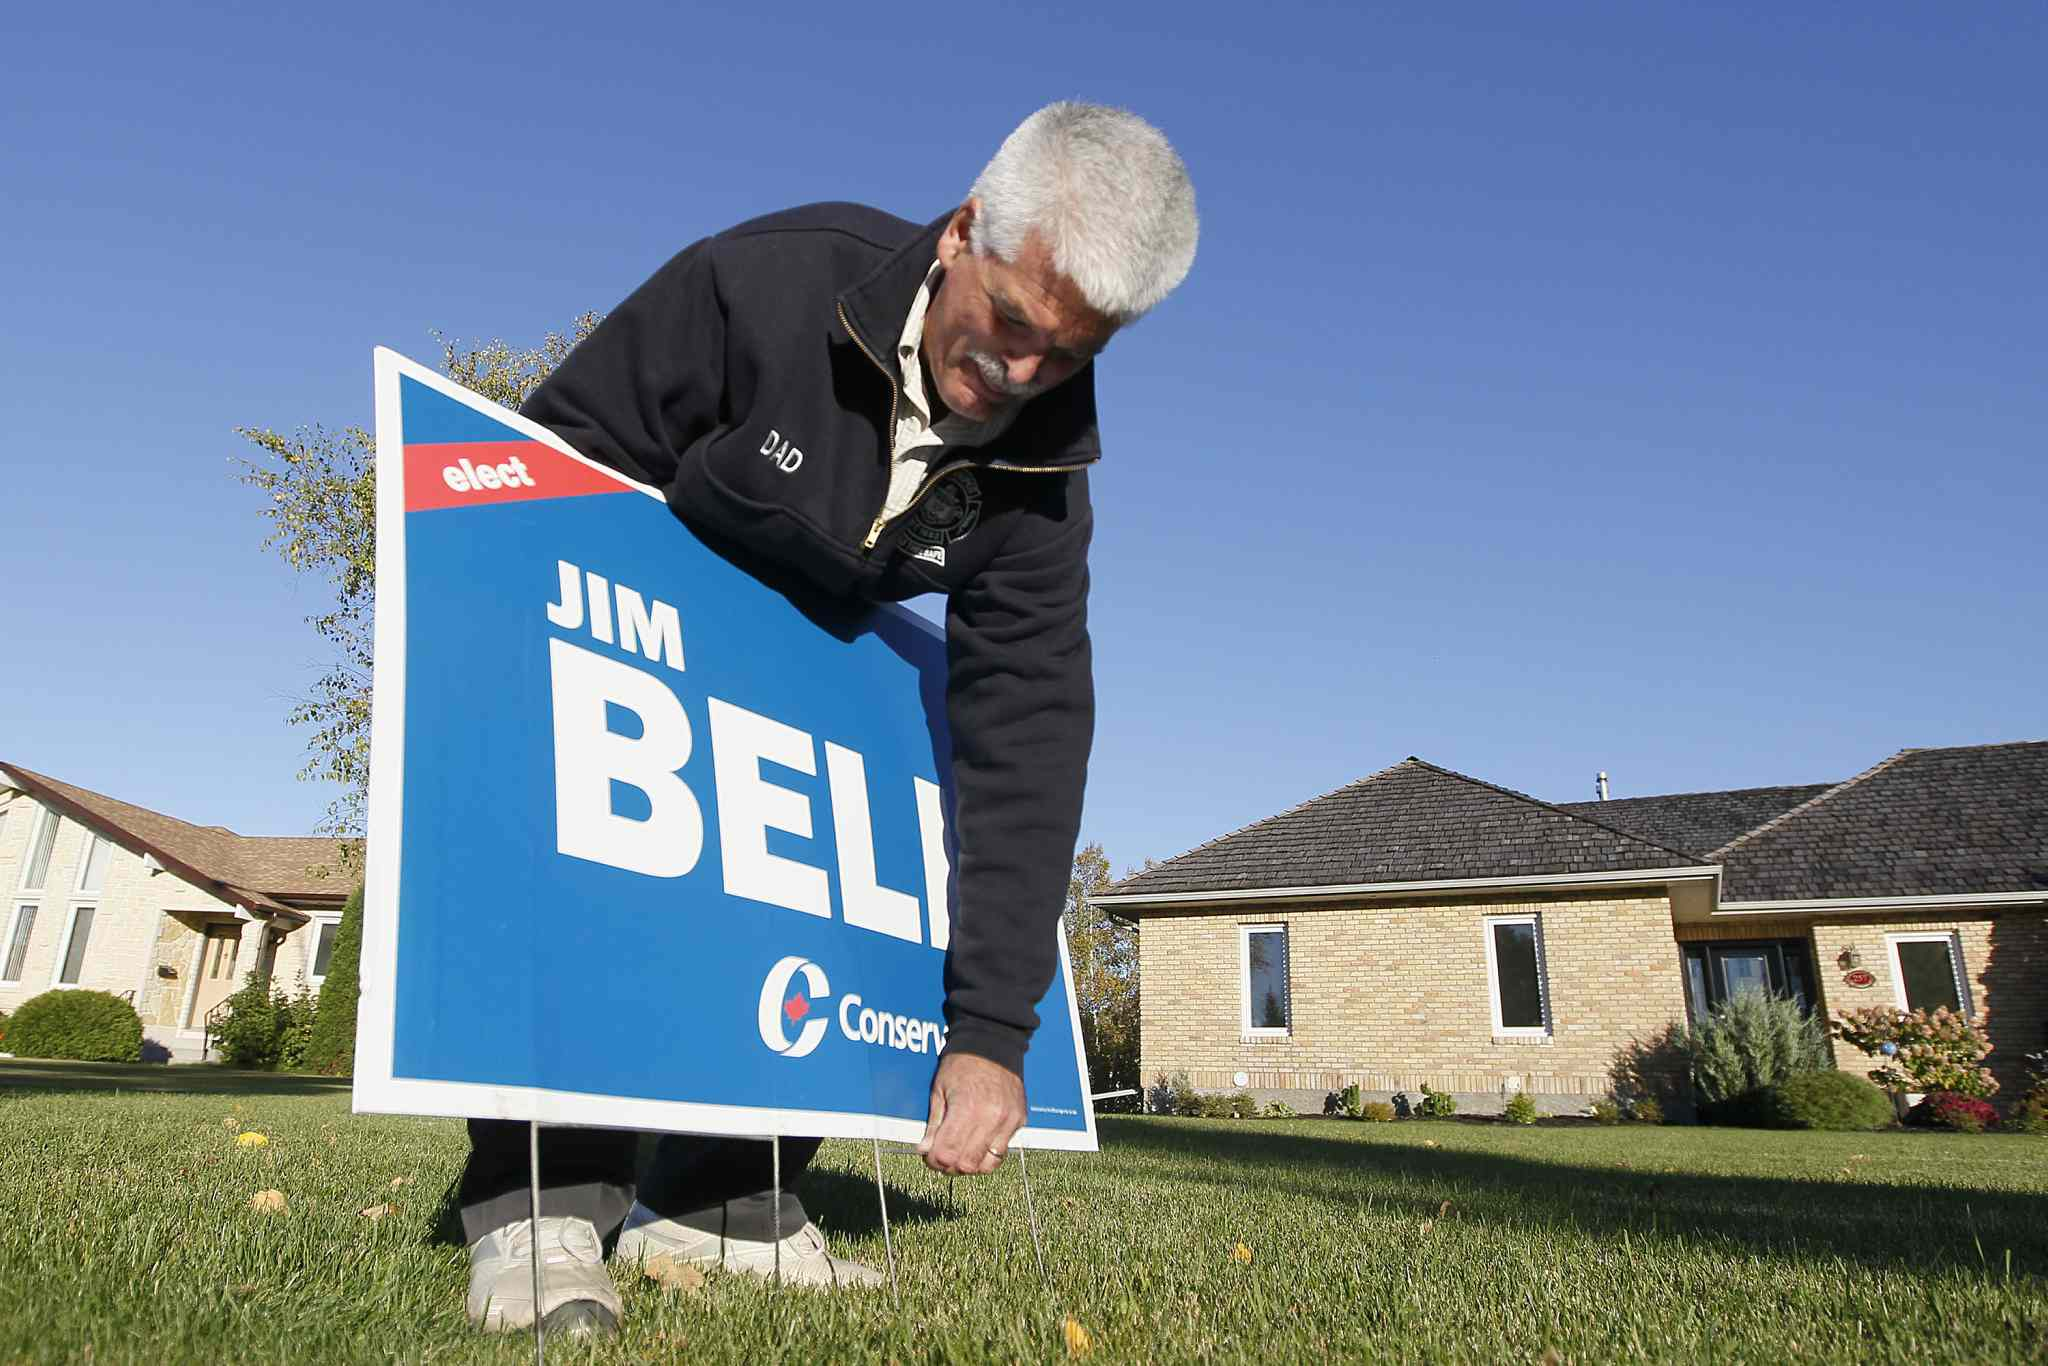 Jim Bell, Conservative candidate for Kildonan-St. Paul.